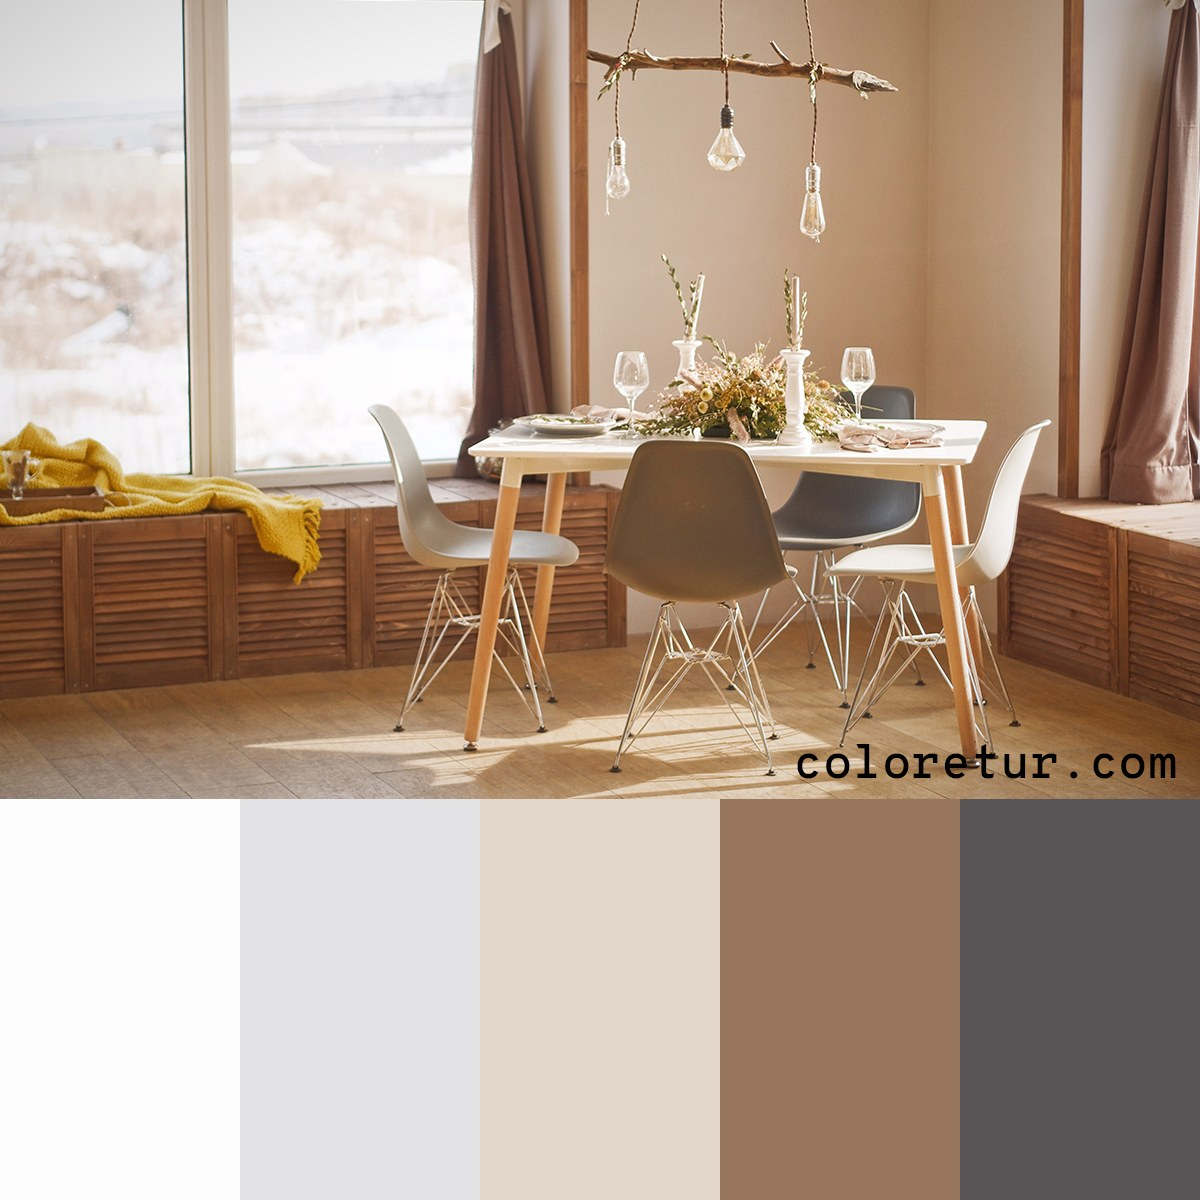 Bright, warm palette for a rustic feel